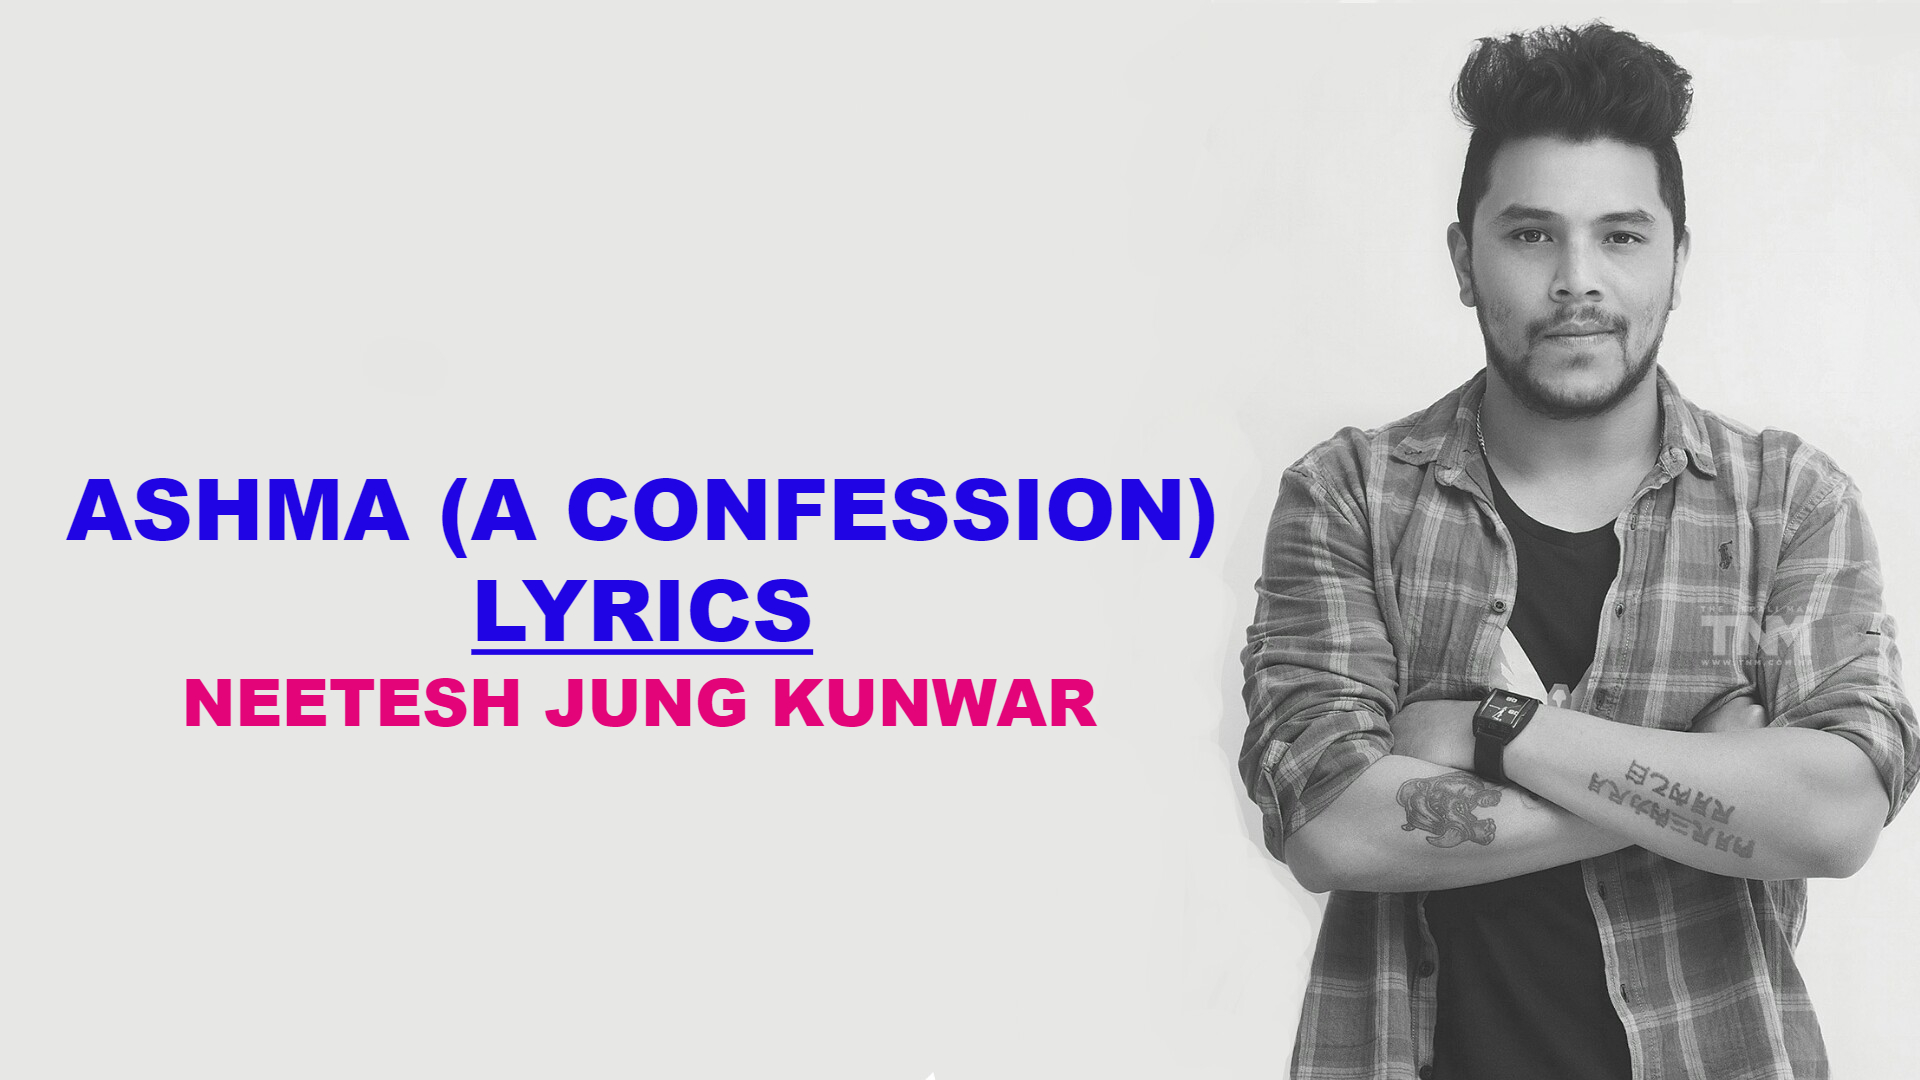 Ashma Lyrics – Neetesh Jung Kunwar | Neetesh Jung Kunwar Lyrics, Chords, Tabs